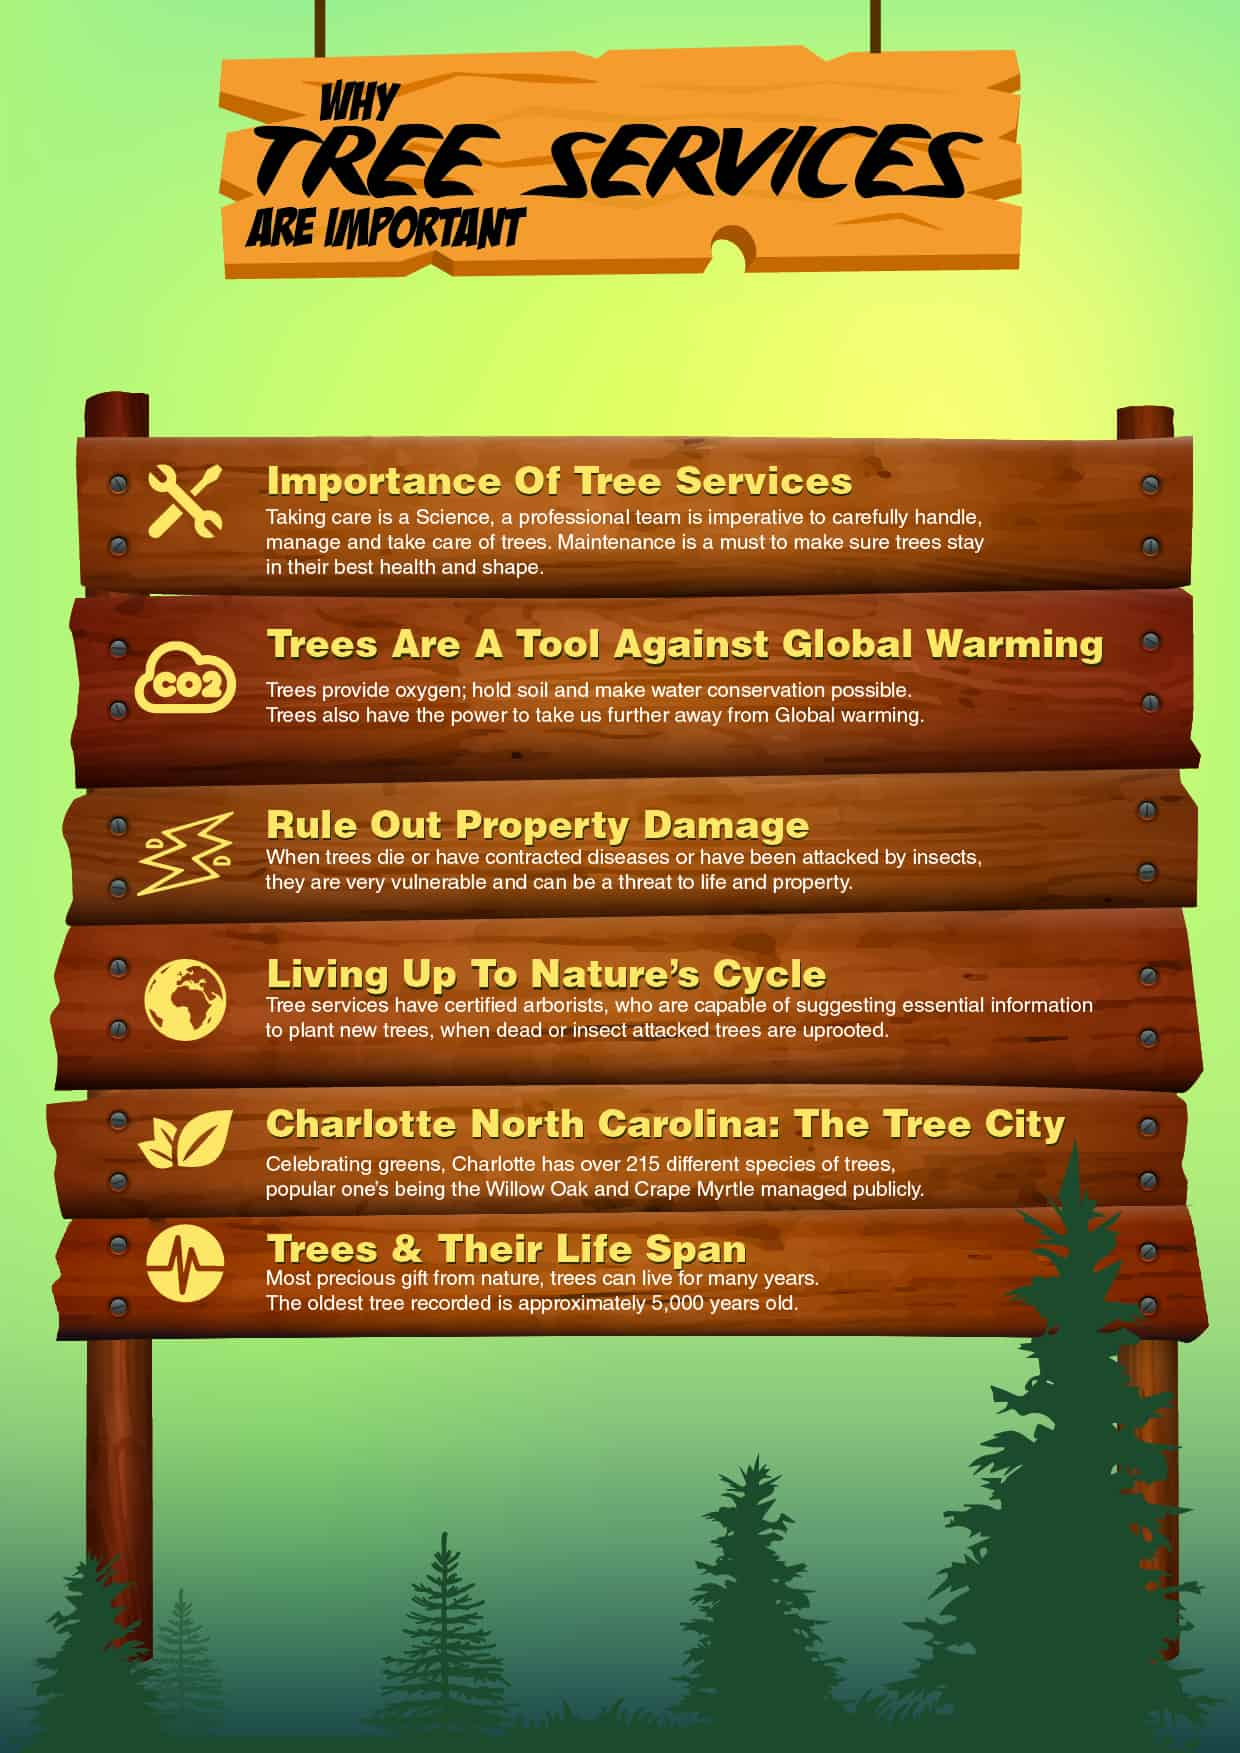 Why tree services are important